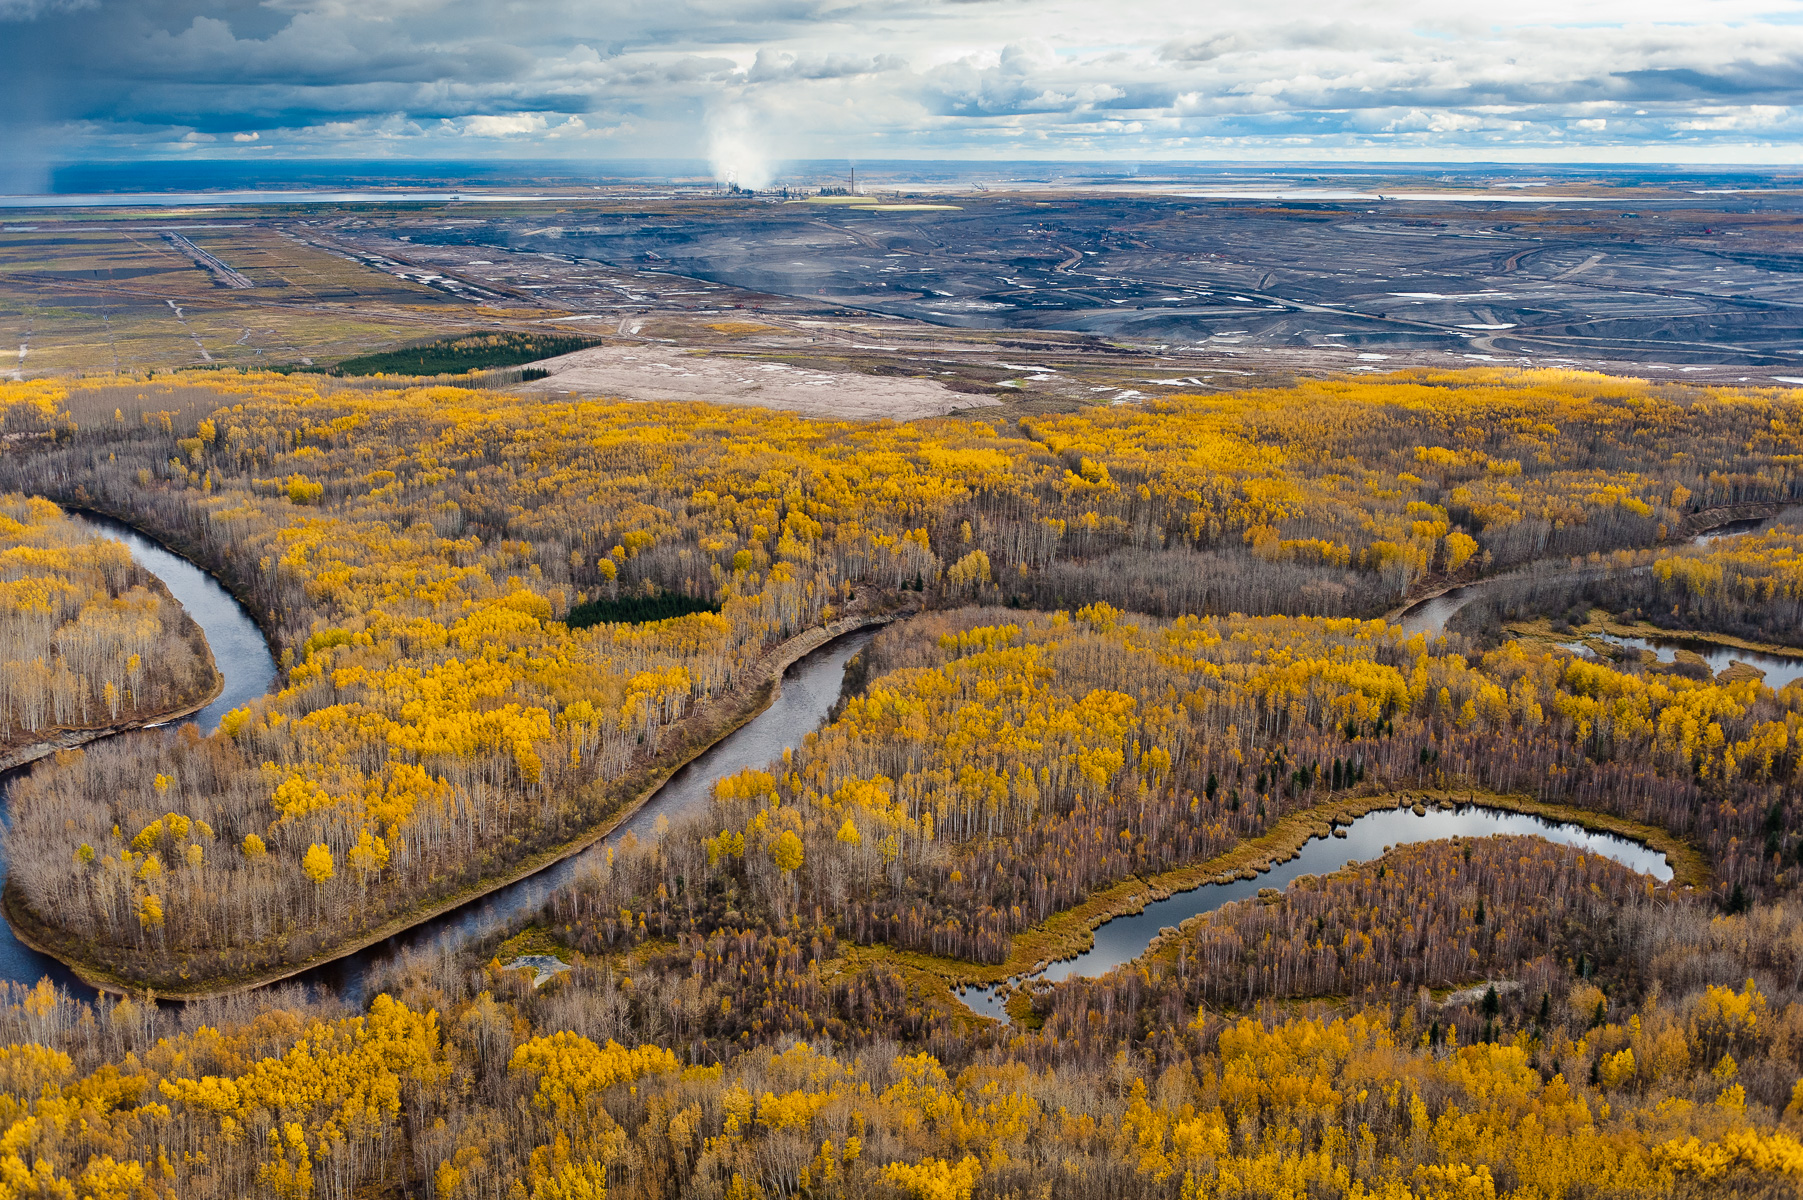 MacKay River, Boreal Forest, and Tar Mine                          Northern Alberta. Canada. 2010.  The boreal forests and wetlands that surround the Tar Sands are the most carbon rich terrestrial ecosystem on the planet, holding almost twice as much carbon as tropical rainforests. Referred to by the tar sands industry as {quote}overburden,{quote} these forests are scraped off and the wetlands dredged, to be replaced by tar mines like this. Exhibition print:  30{quote}x45{quote} archival pigment print on Hahnemuhle bamboo, bonded to aluminum.